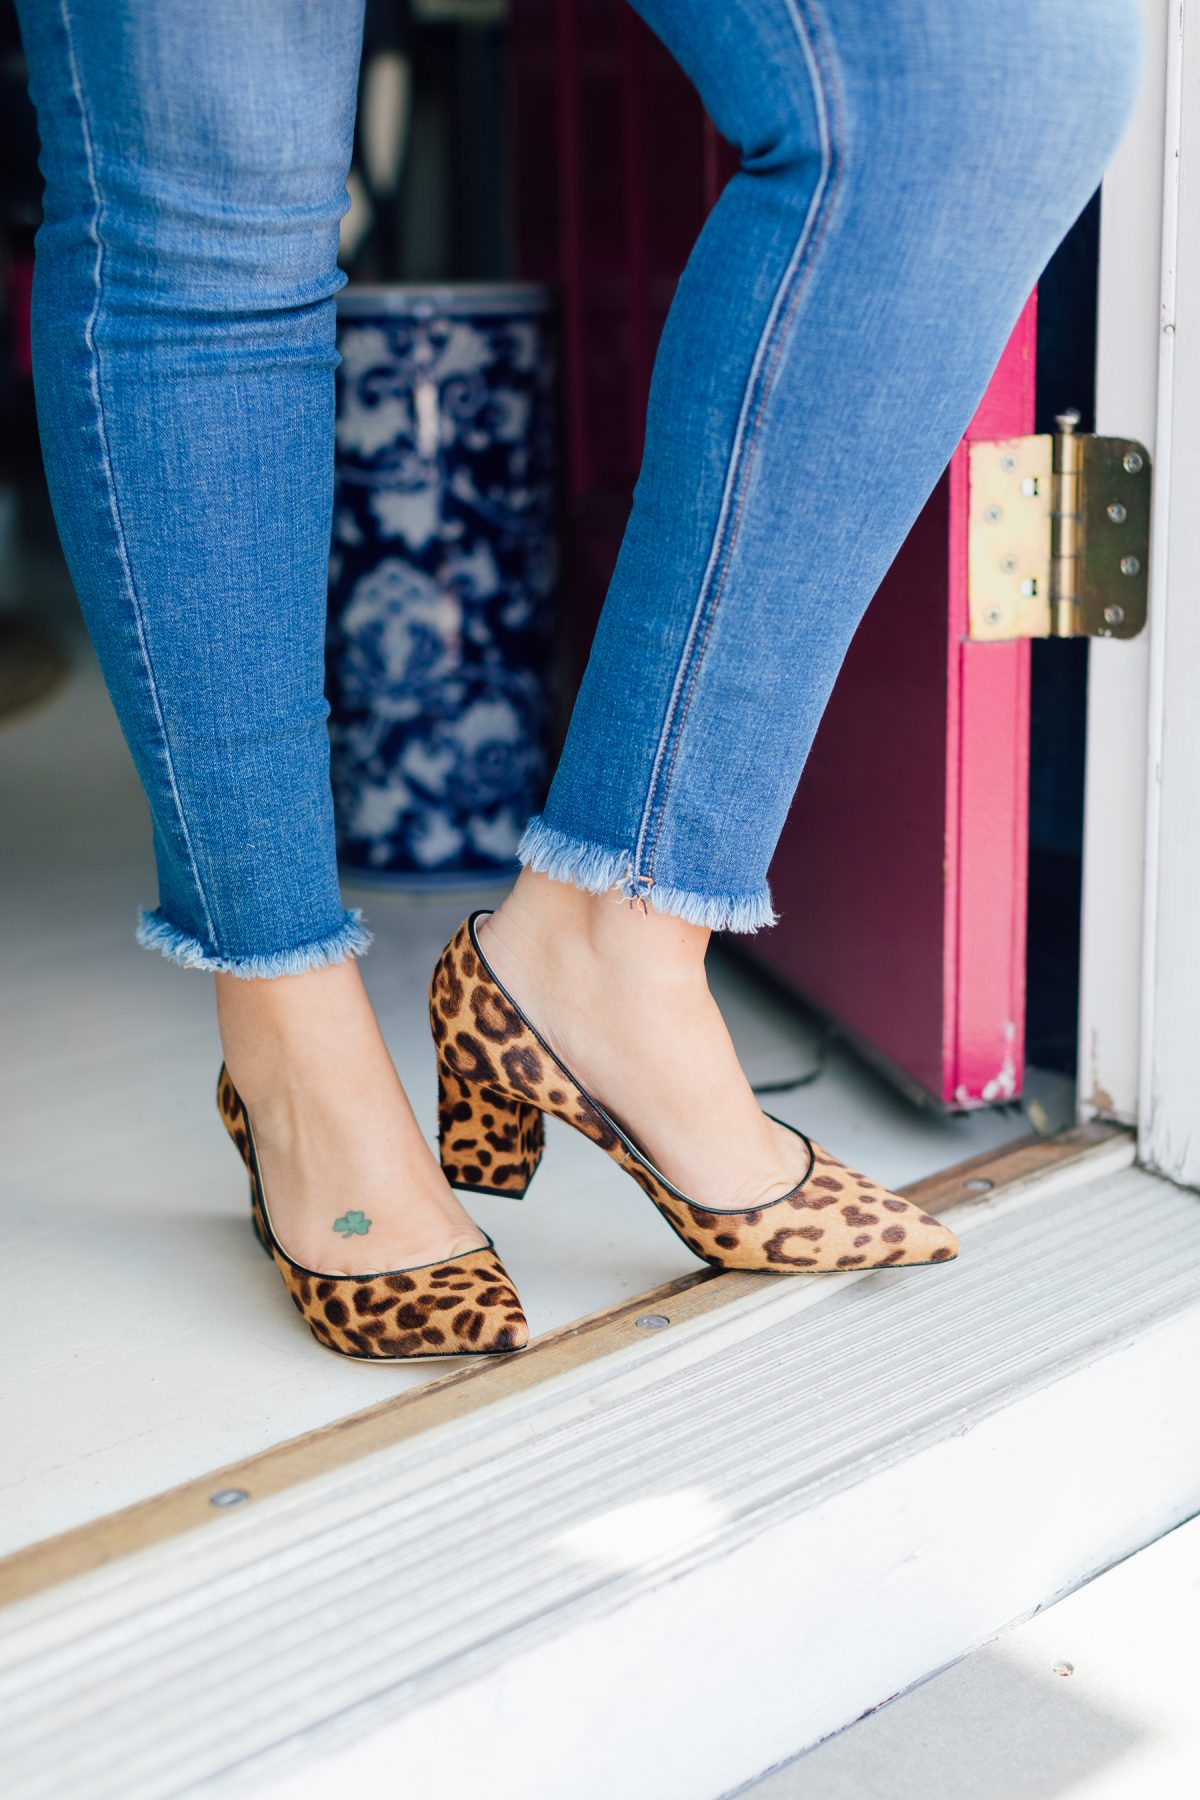 Leopard Print Block Heels and Frayed Denim